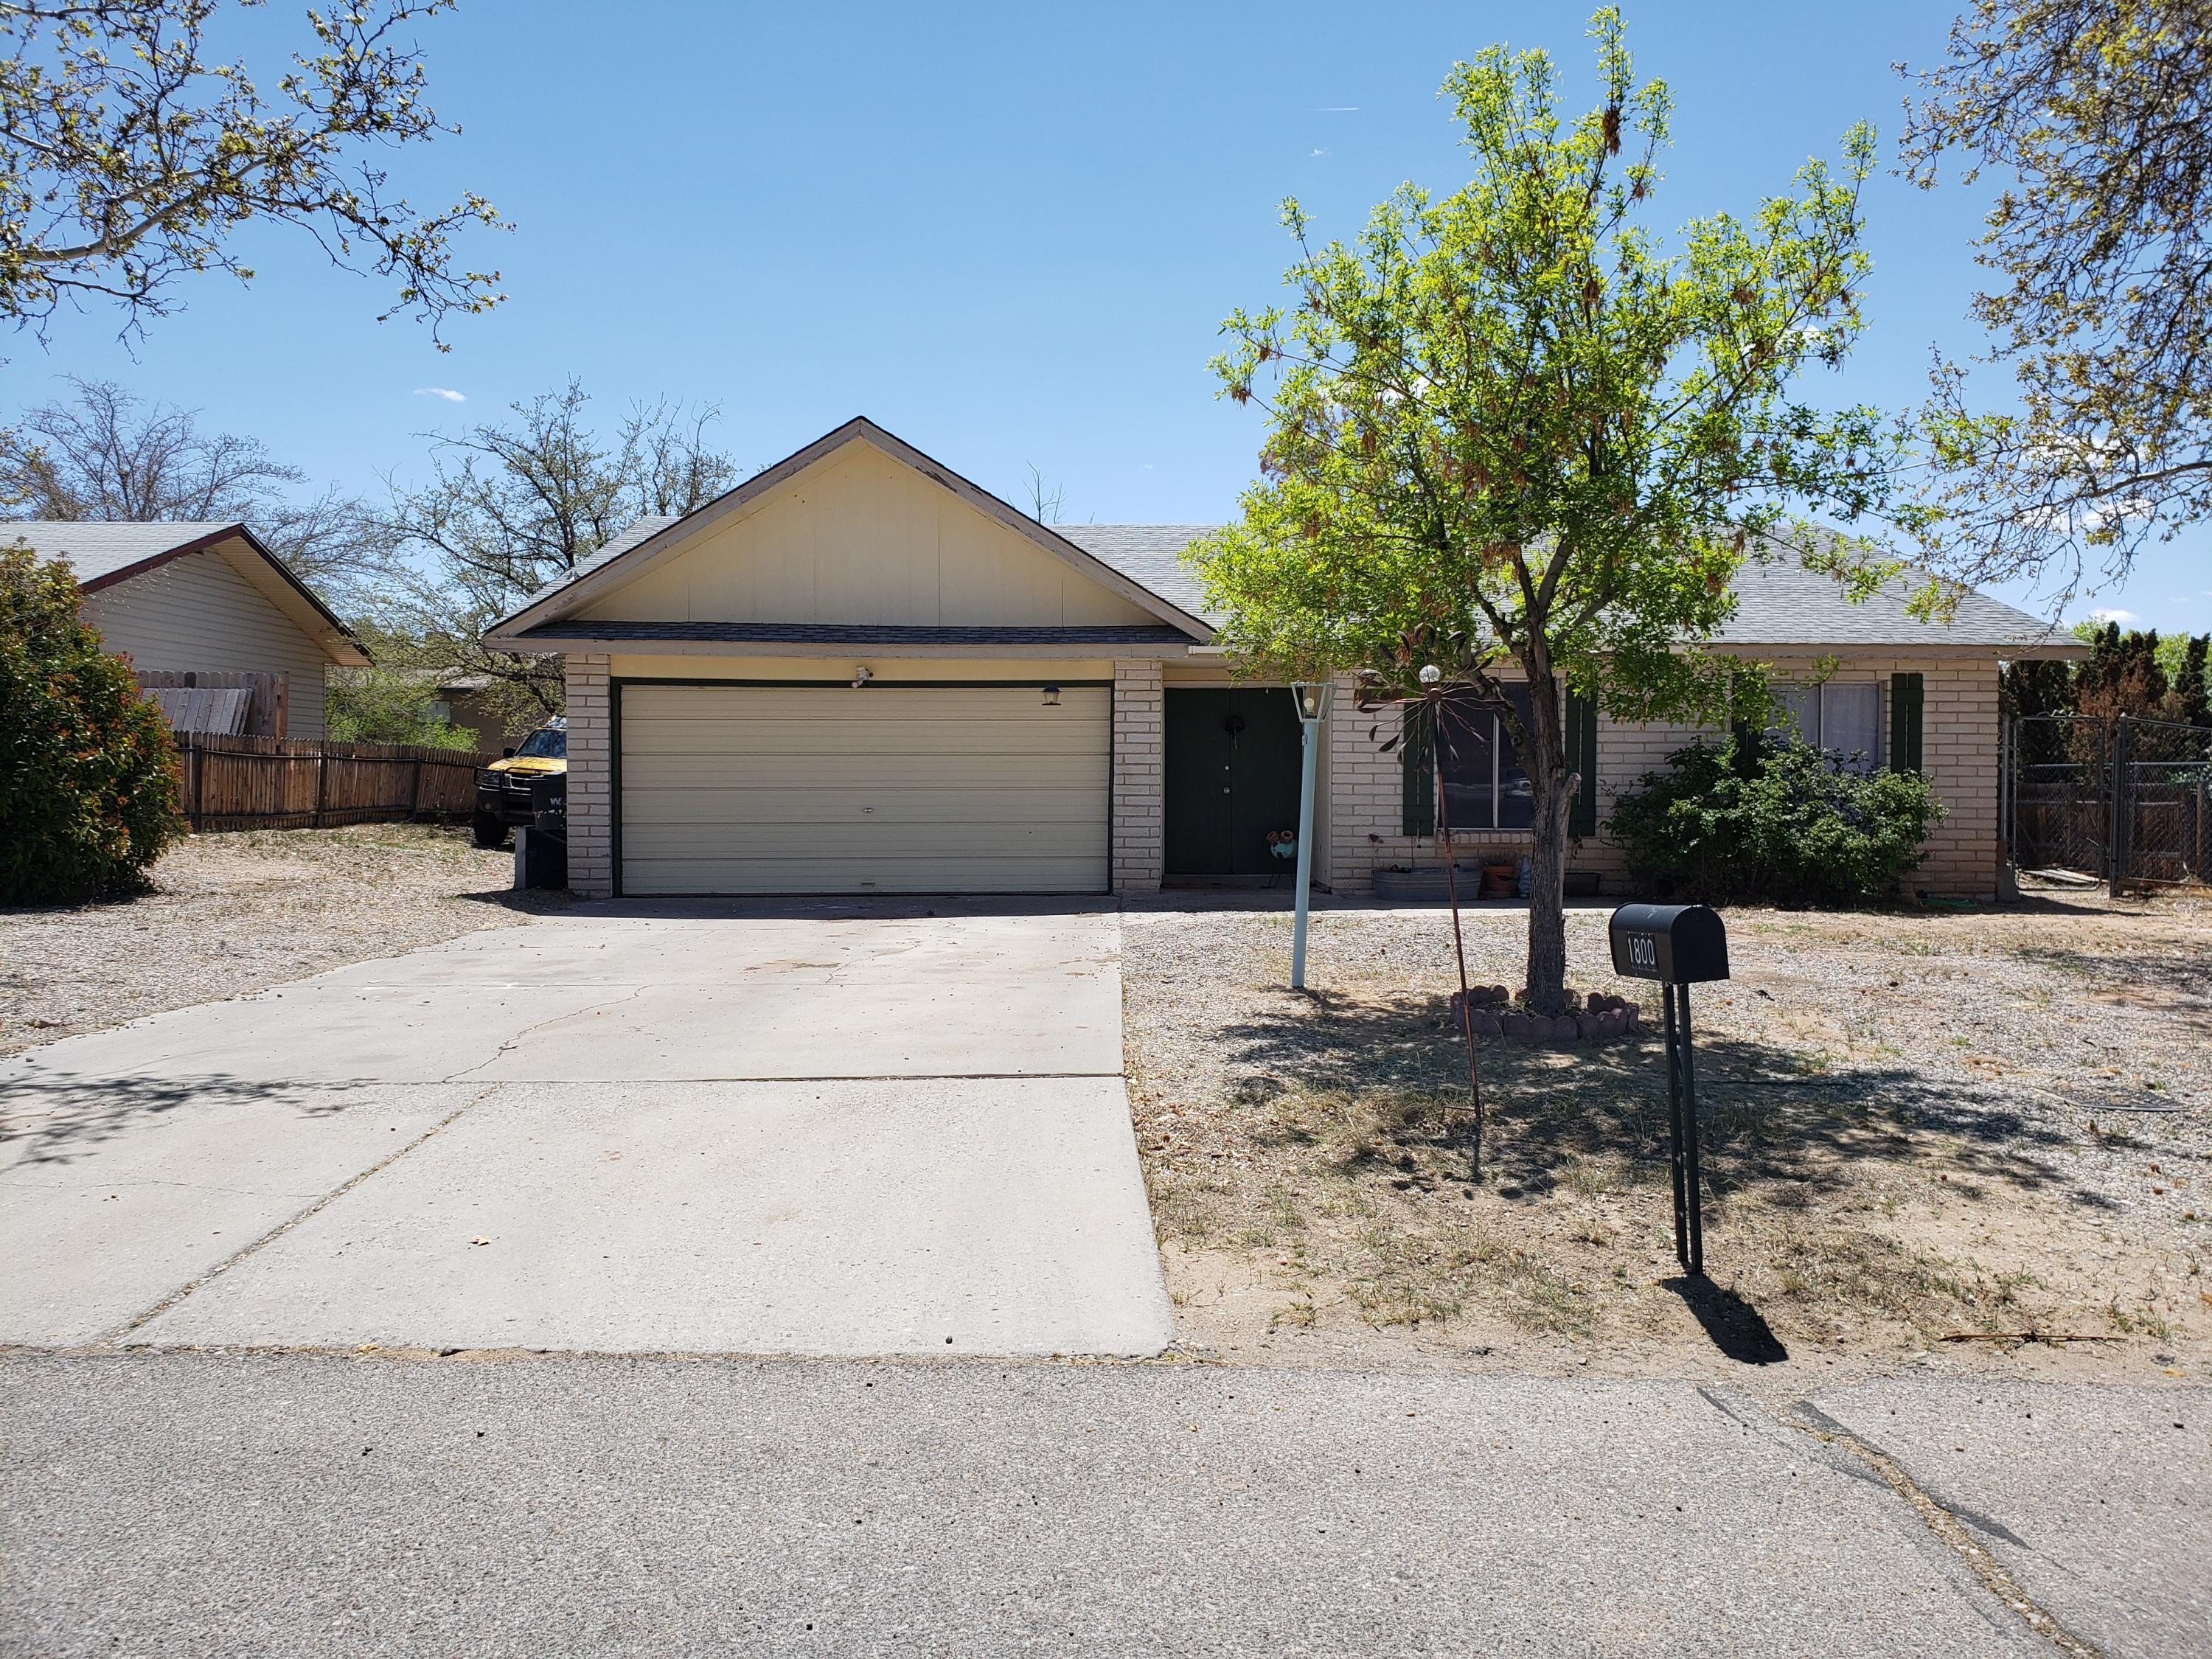 Single family home in a convenient location in Rio Rancho with great bones to fix up and enjoy! This house features a converted garage that is being used as a gym or could be an additional bedroom. Fenced backyard and dog run on one side. This home is in need of some drywall/paint work and is perfect for the go-getter or handy man. Price reflects the condition of the home.